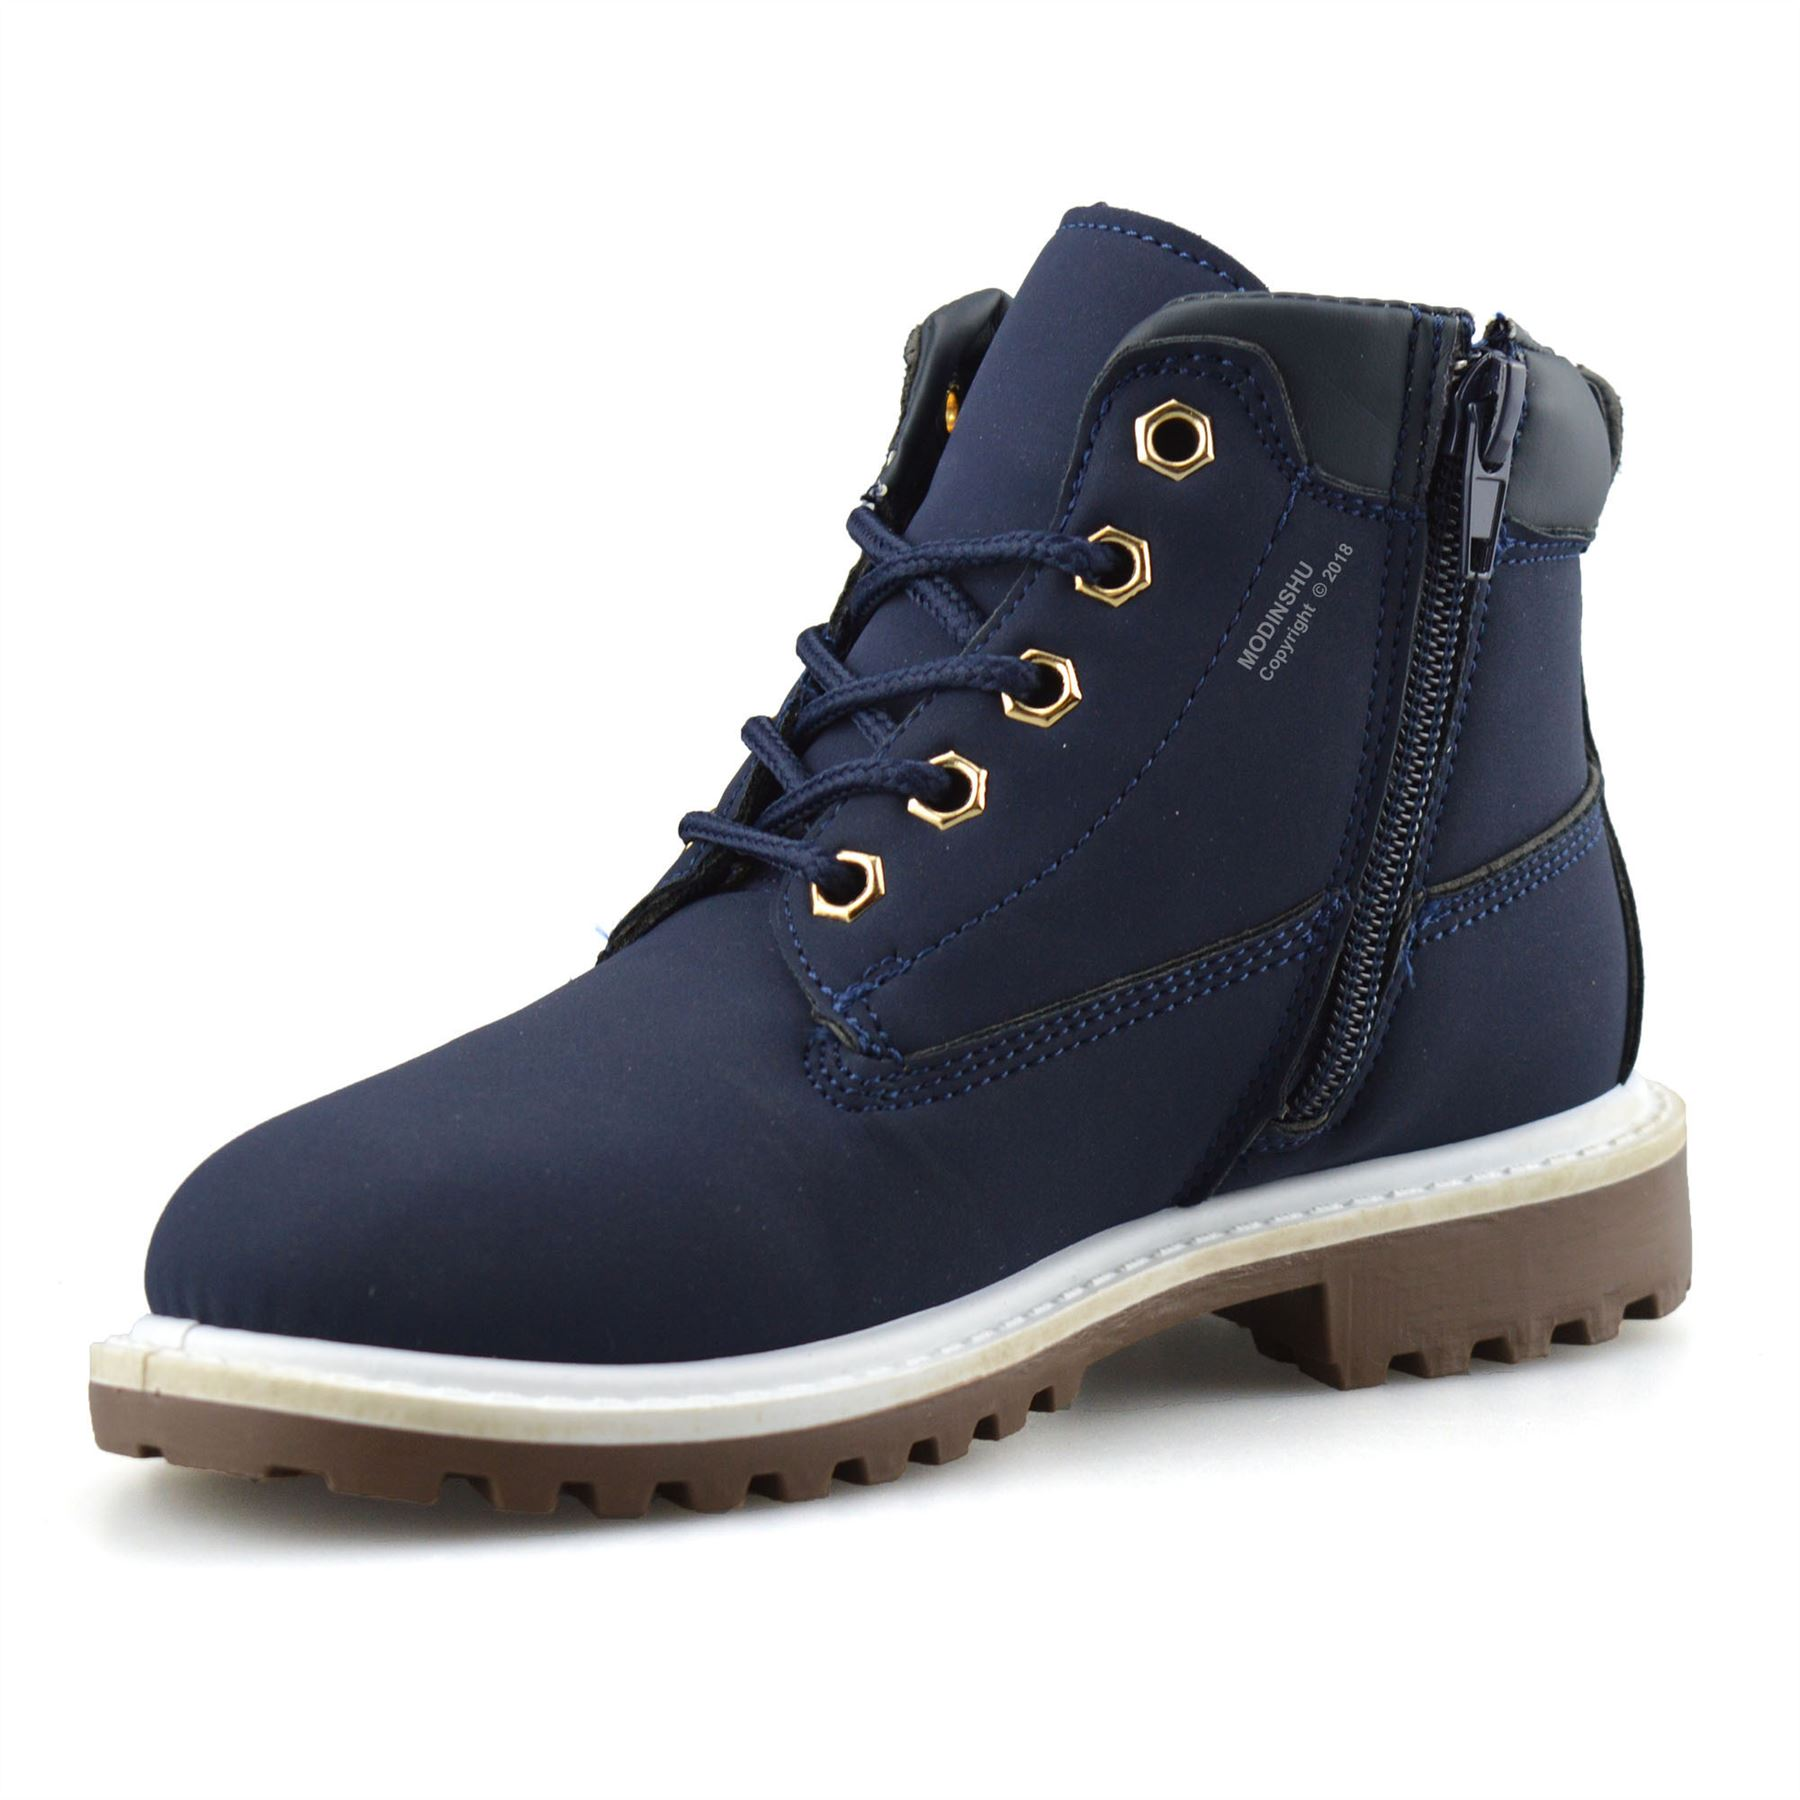 Boys-Kids-New-Casual-Zip-Lace-Up-Winter-Walking-Ankle-Boots-Trainers-Shoes-Size thumbnail 15